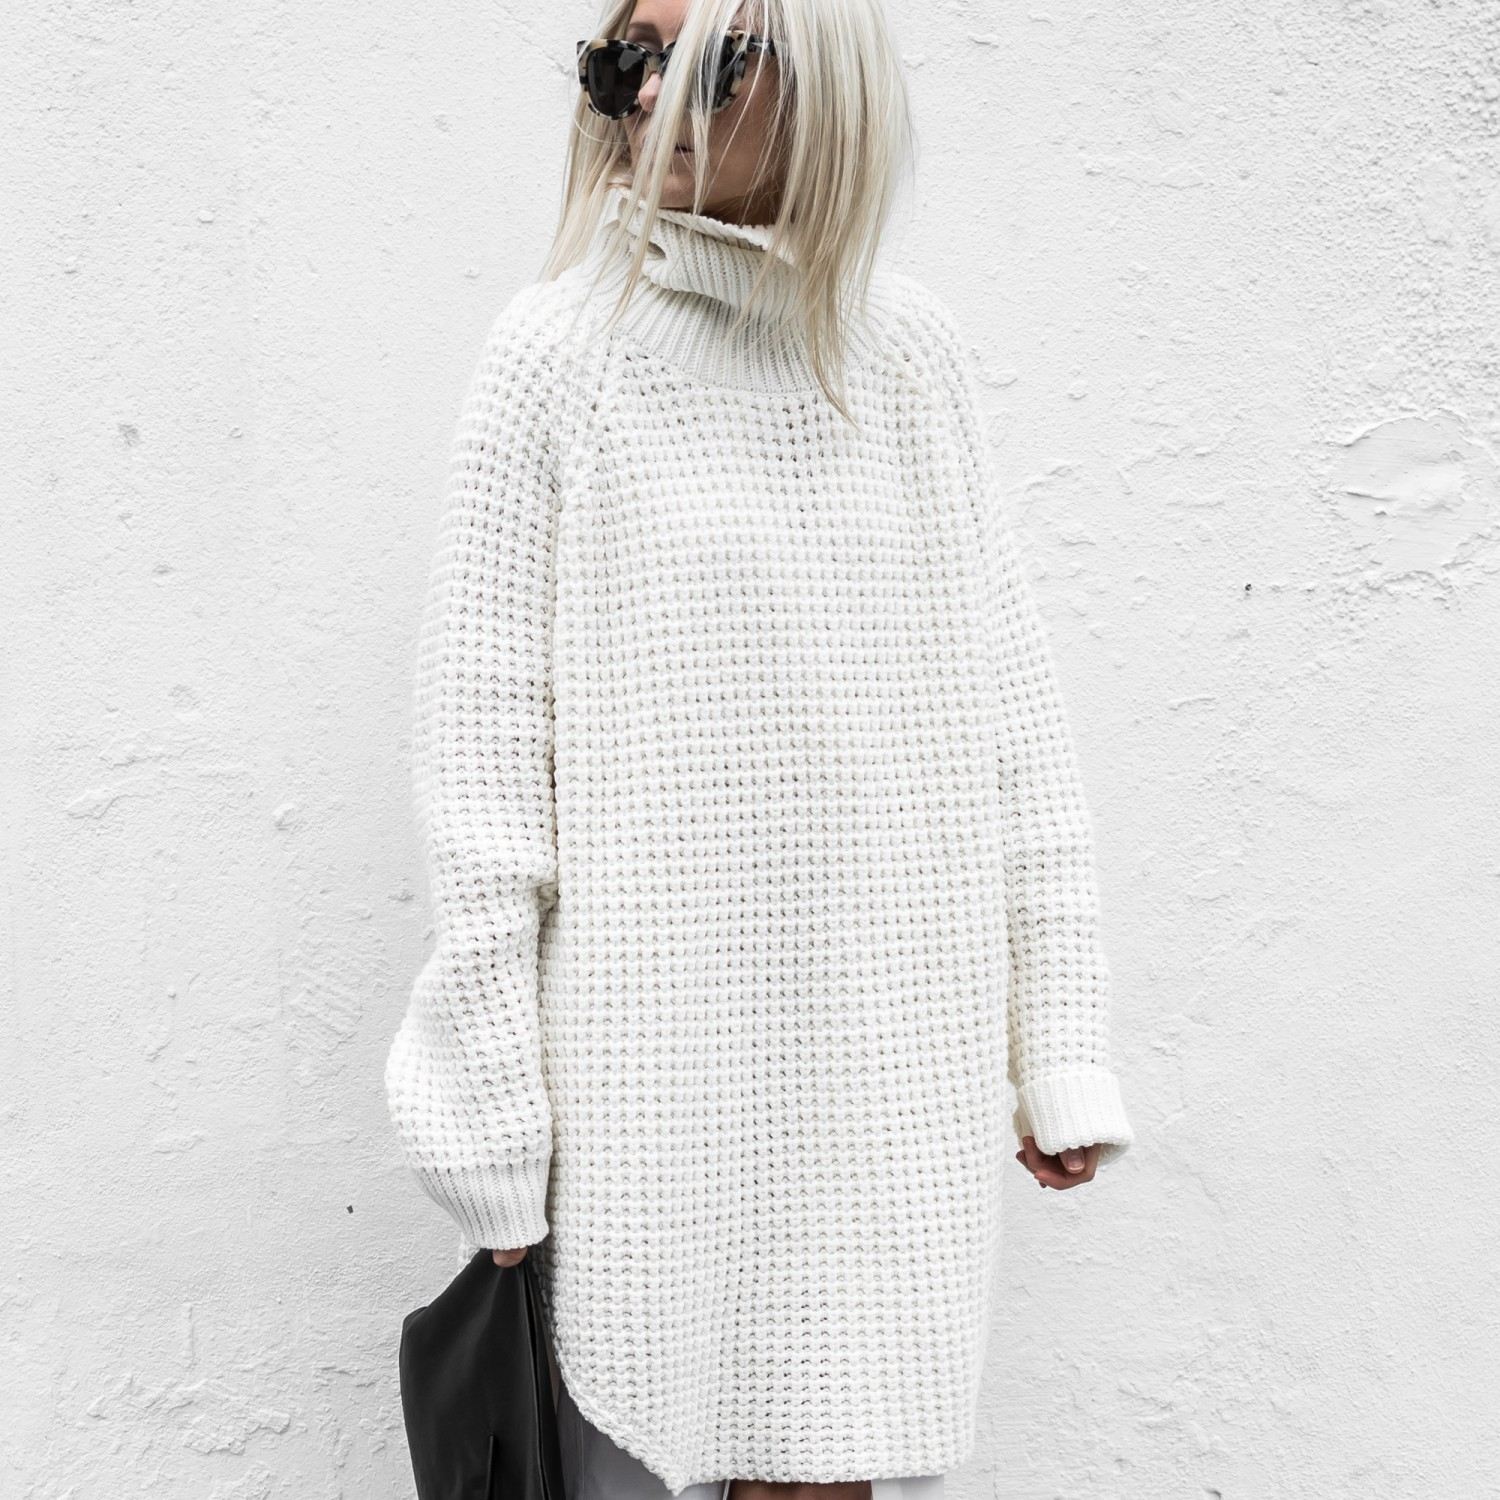 Steal Her Style: Oversized Summer Outfit | Love Daily Dose